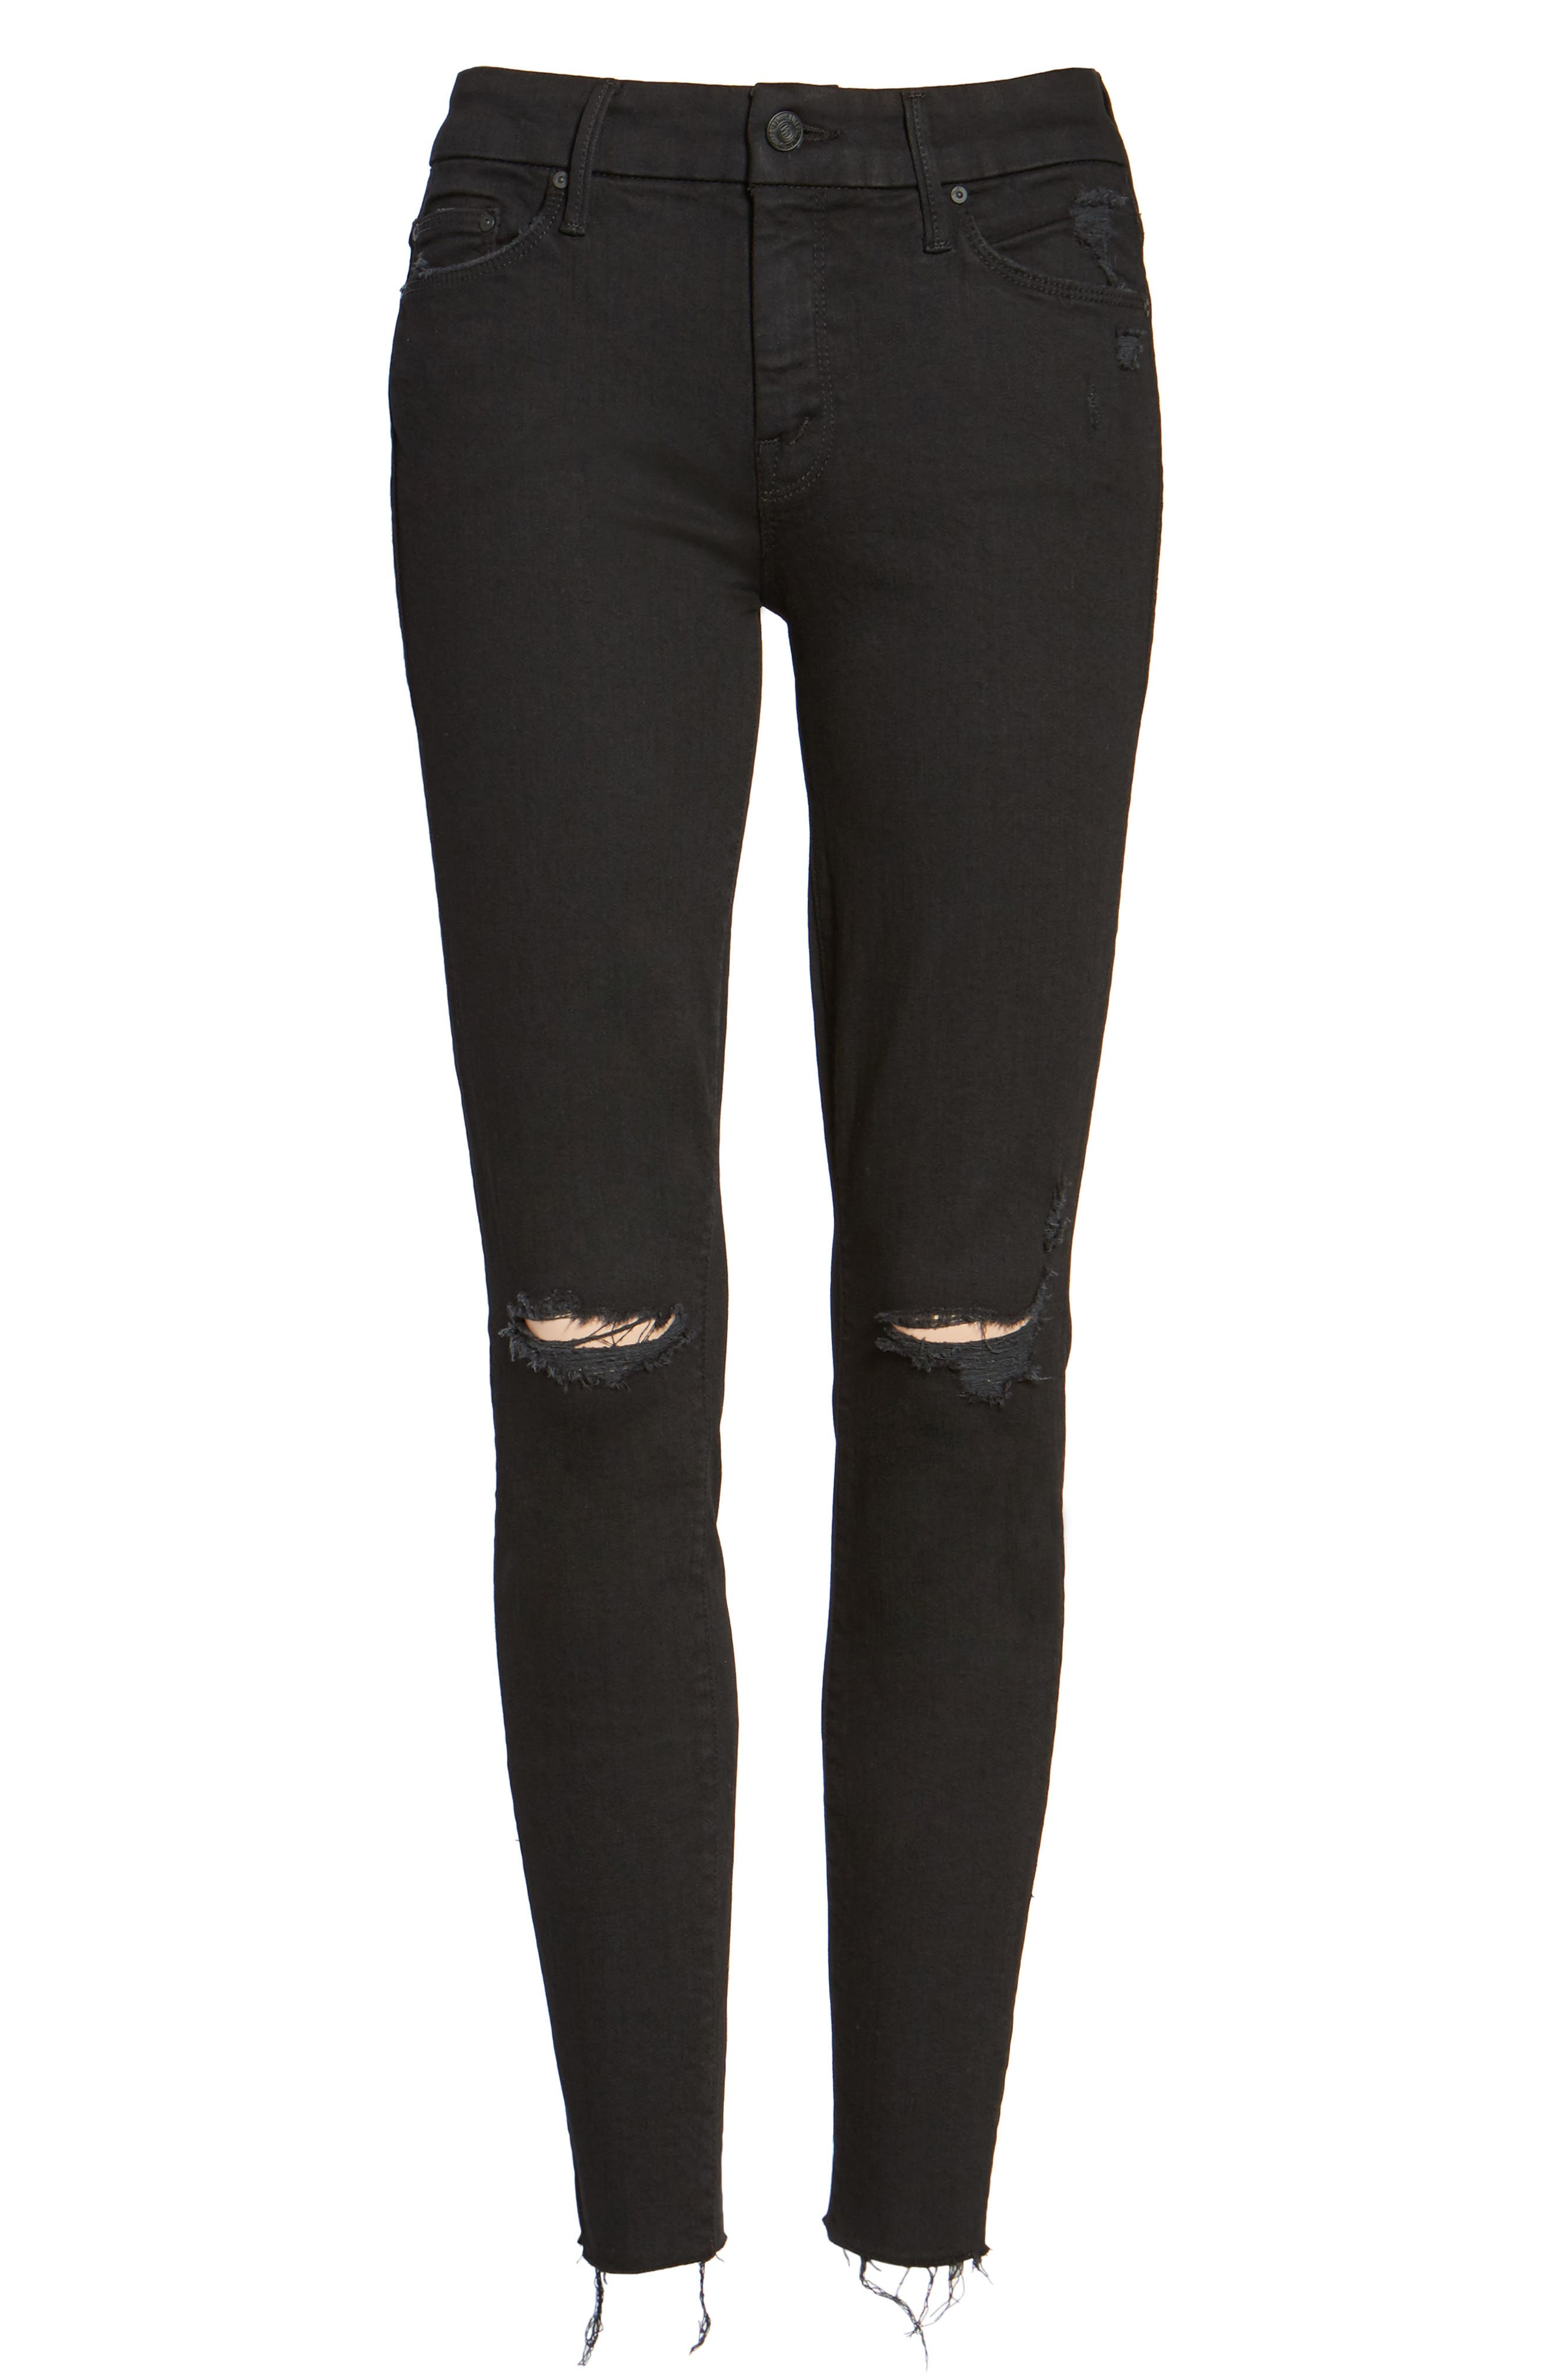 MOTHER, 'The Looker' Frayed Ankle Skinny Jeans, Alternate thumbnail 2, color, GUILTY AS SIN